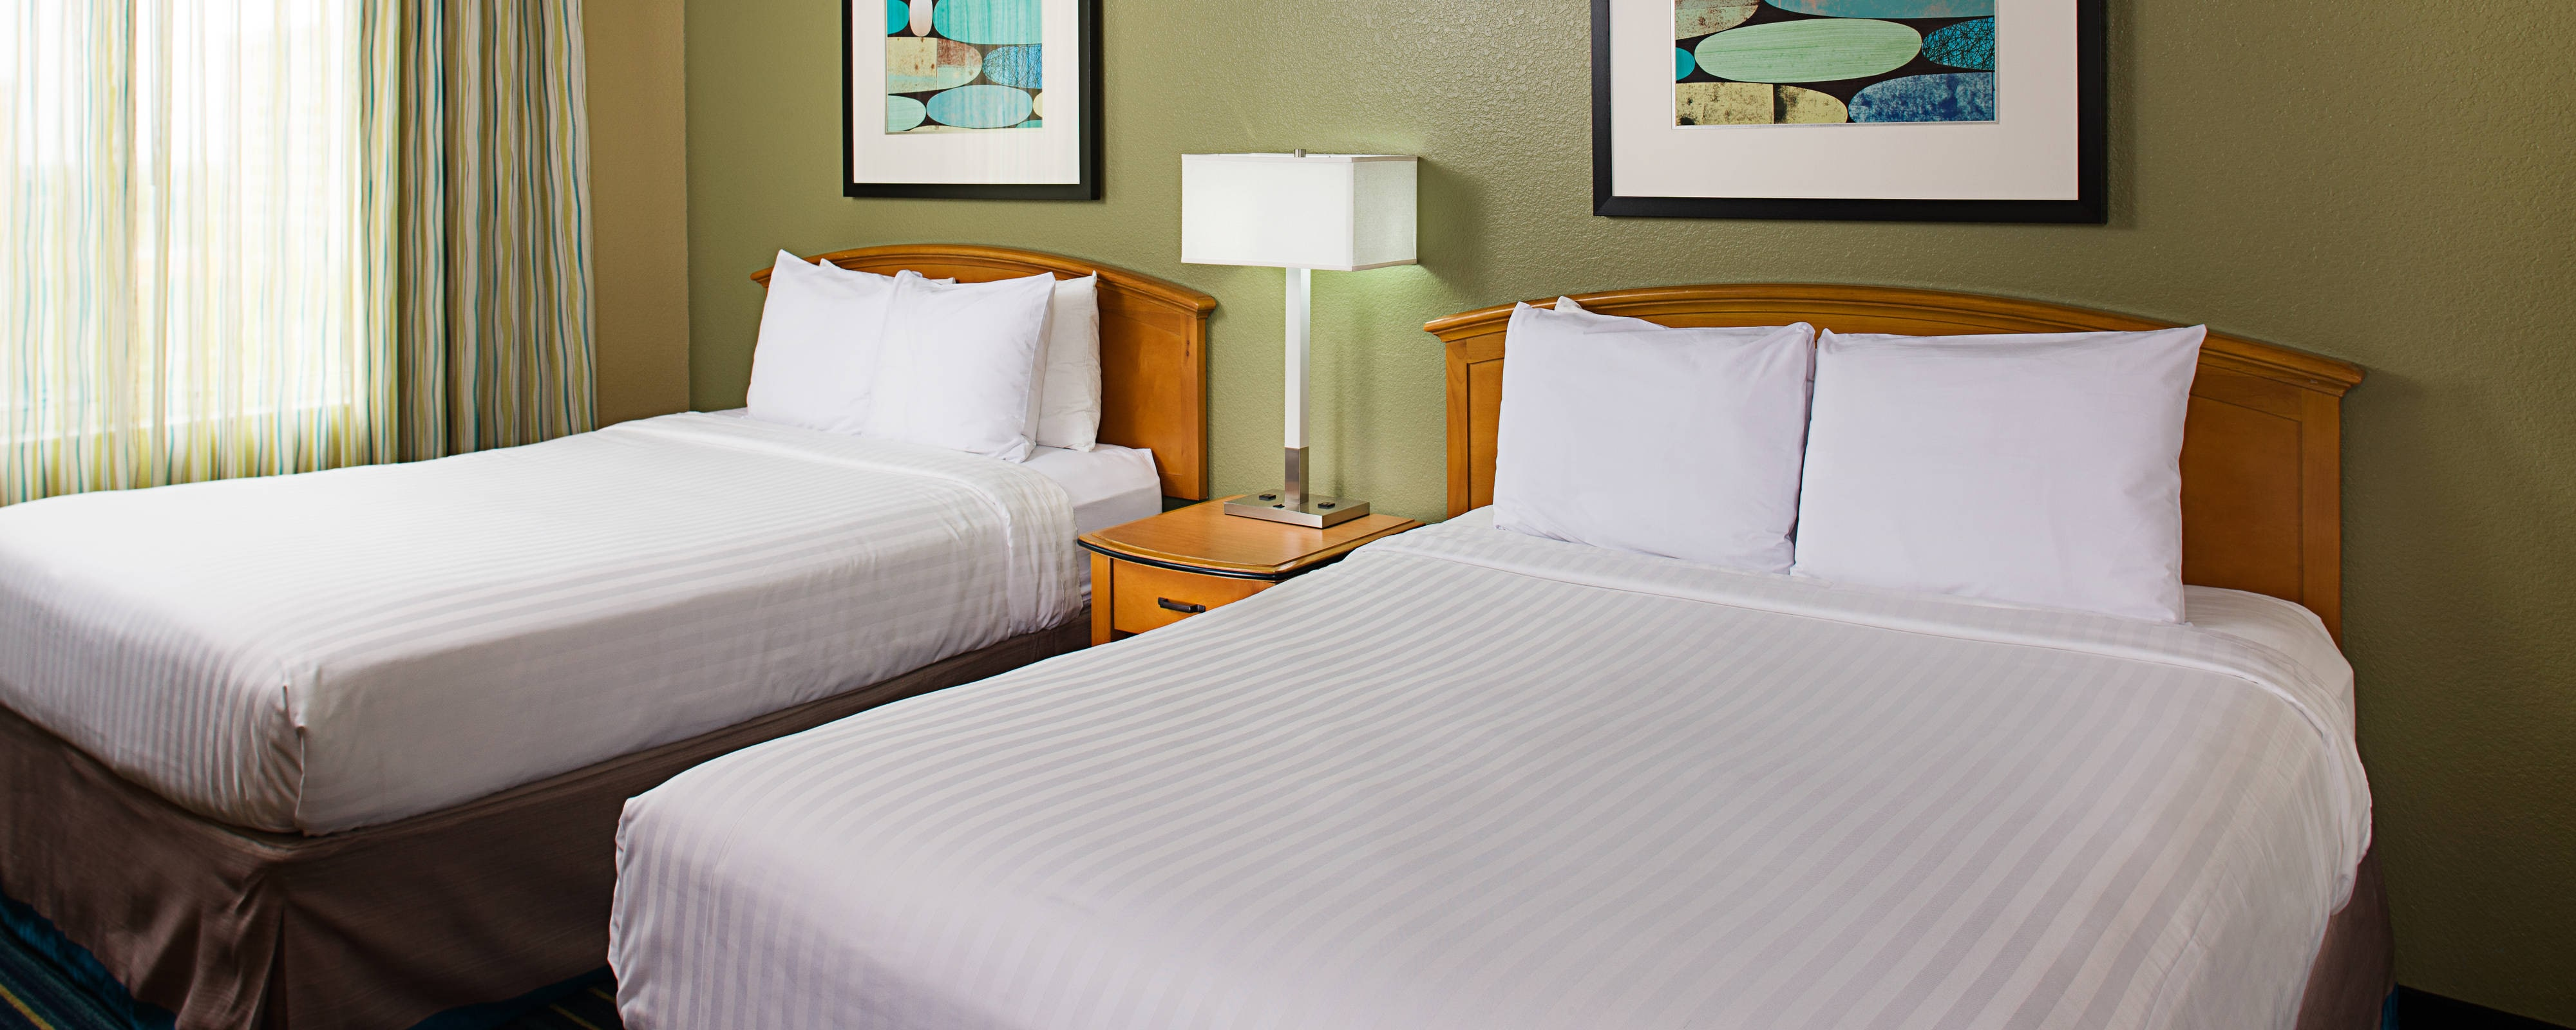 Residence Inn Queen/Queen Suites